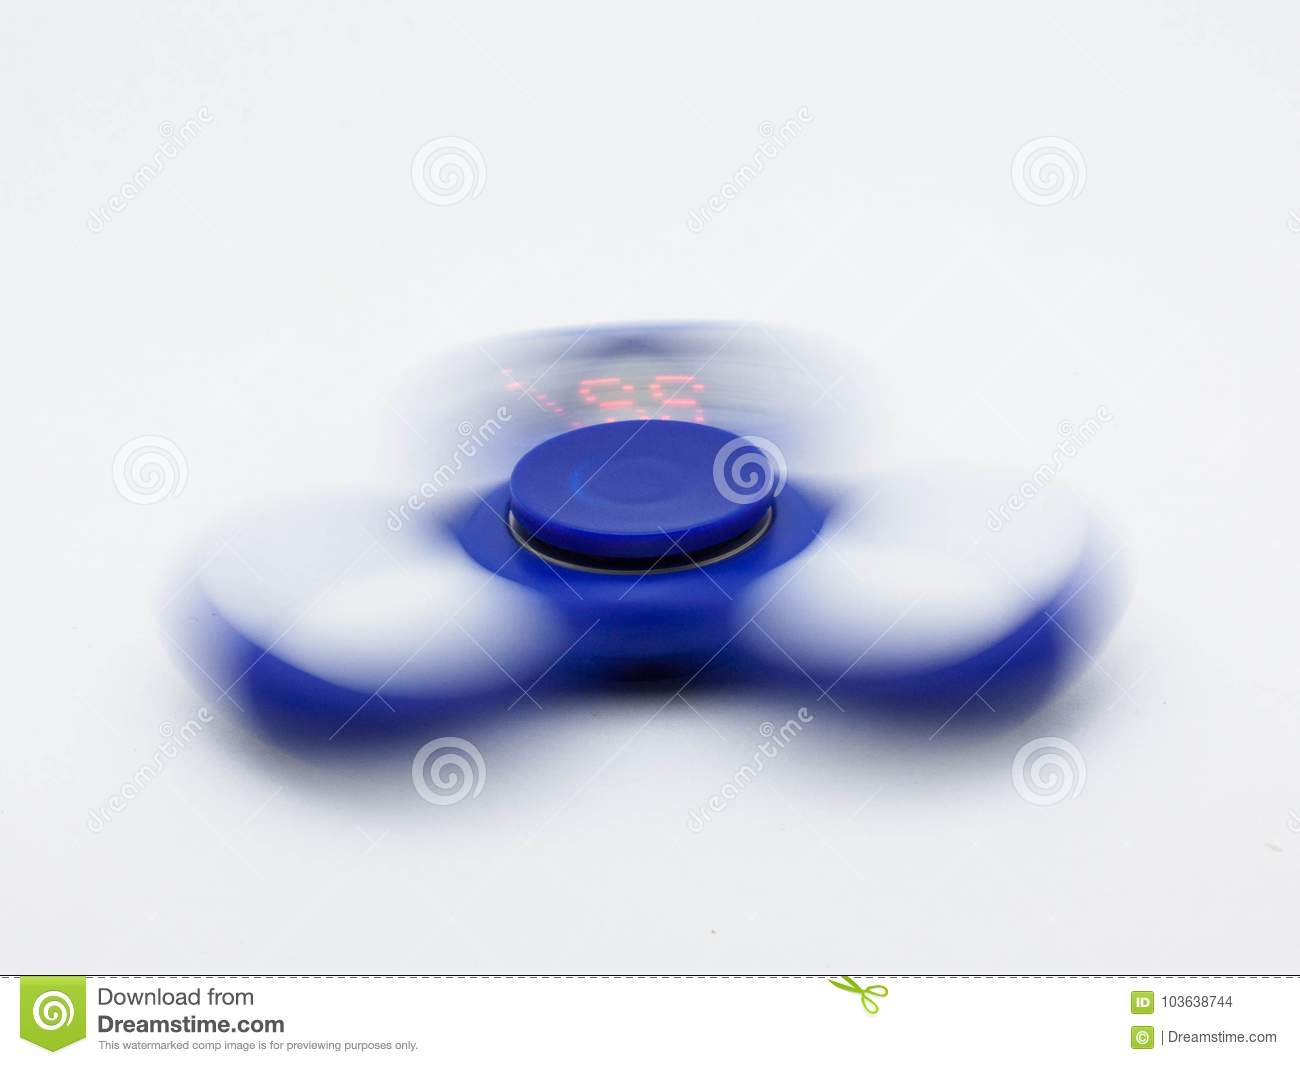 Clipart spinner in motion on a white background